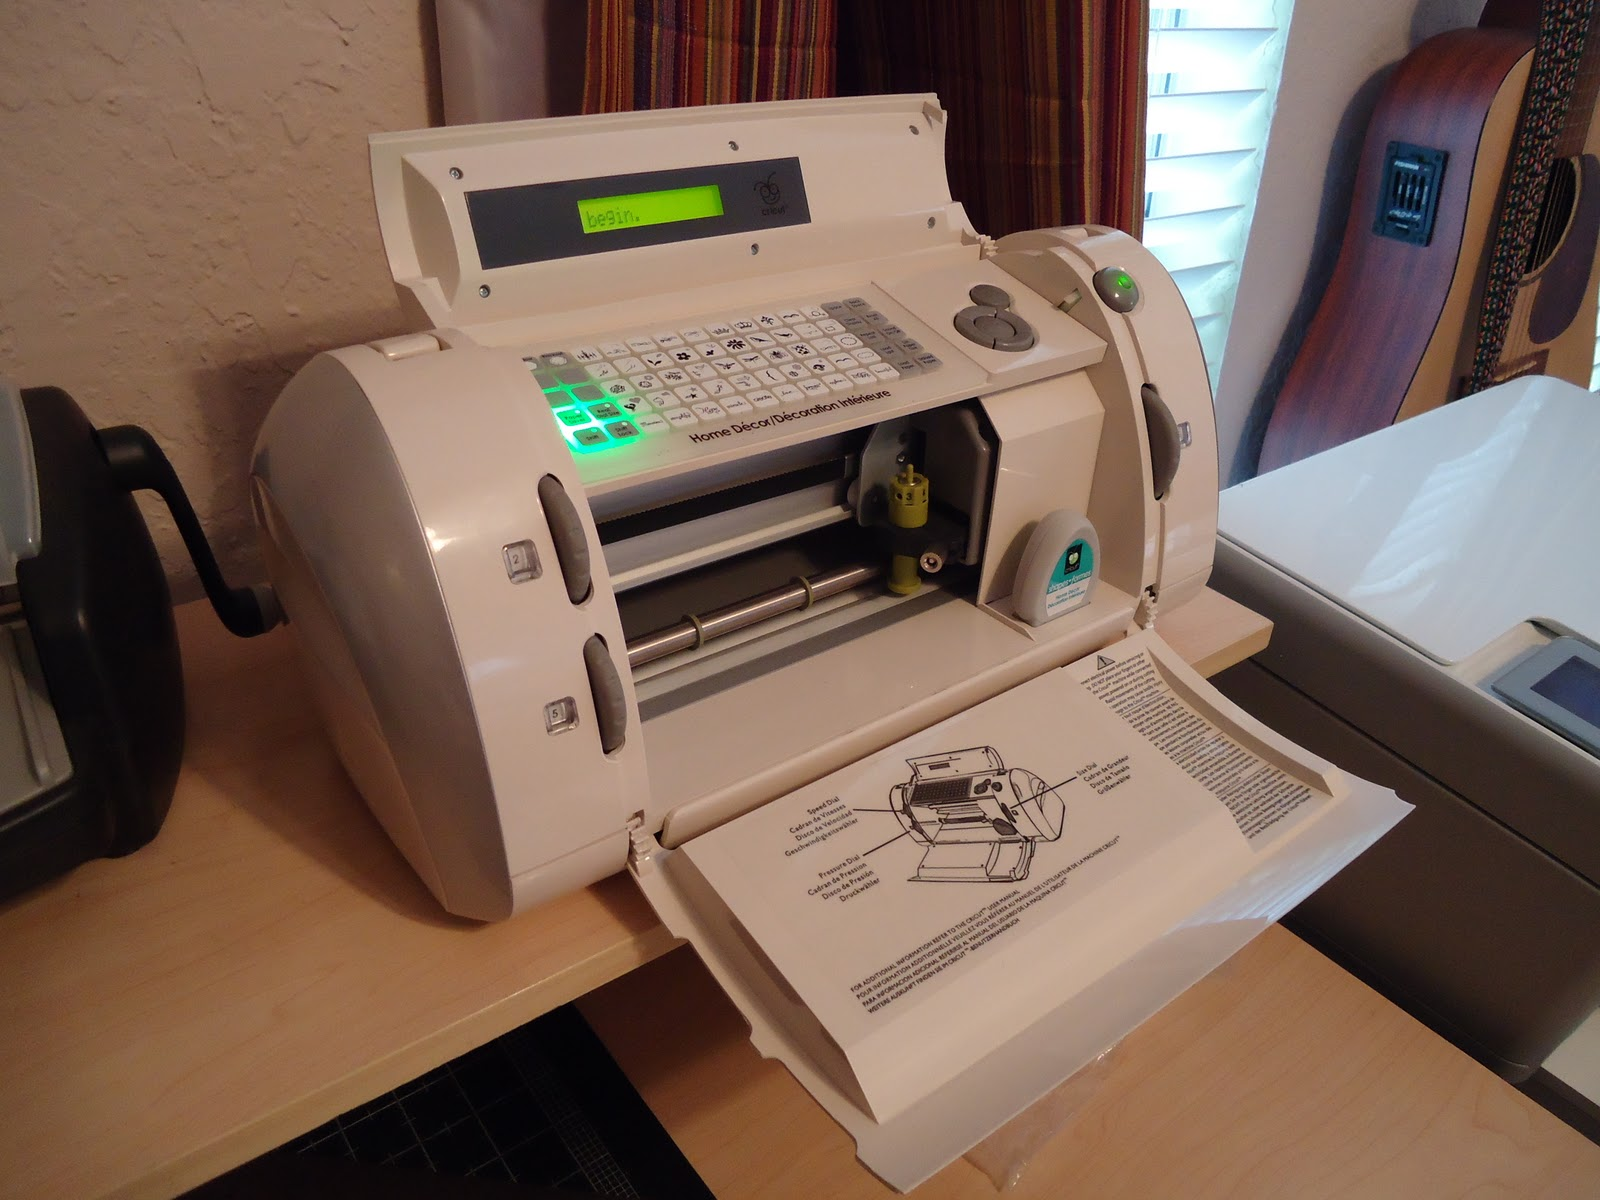 cricut stencil machine